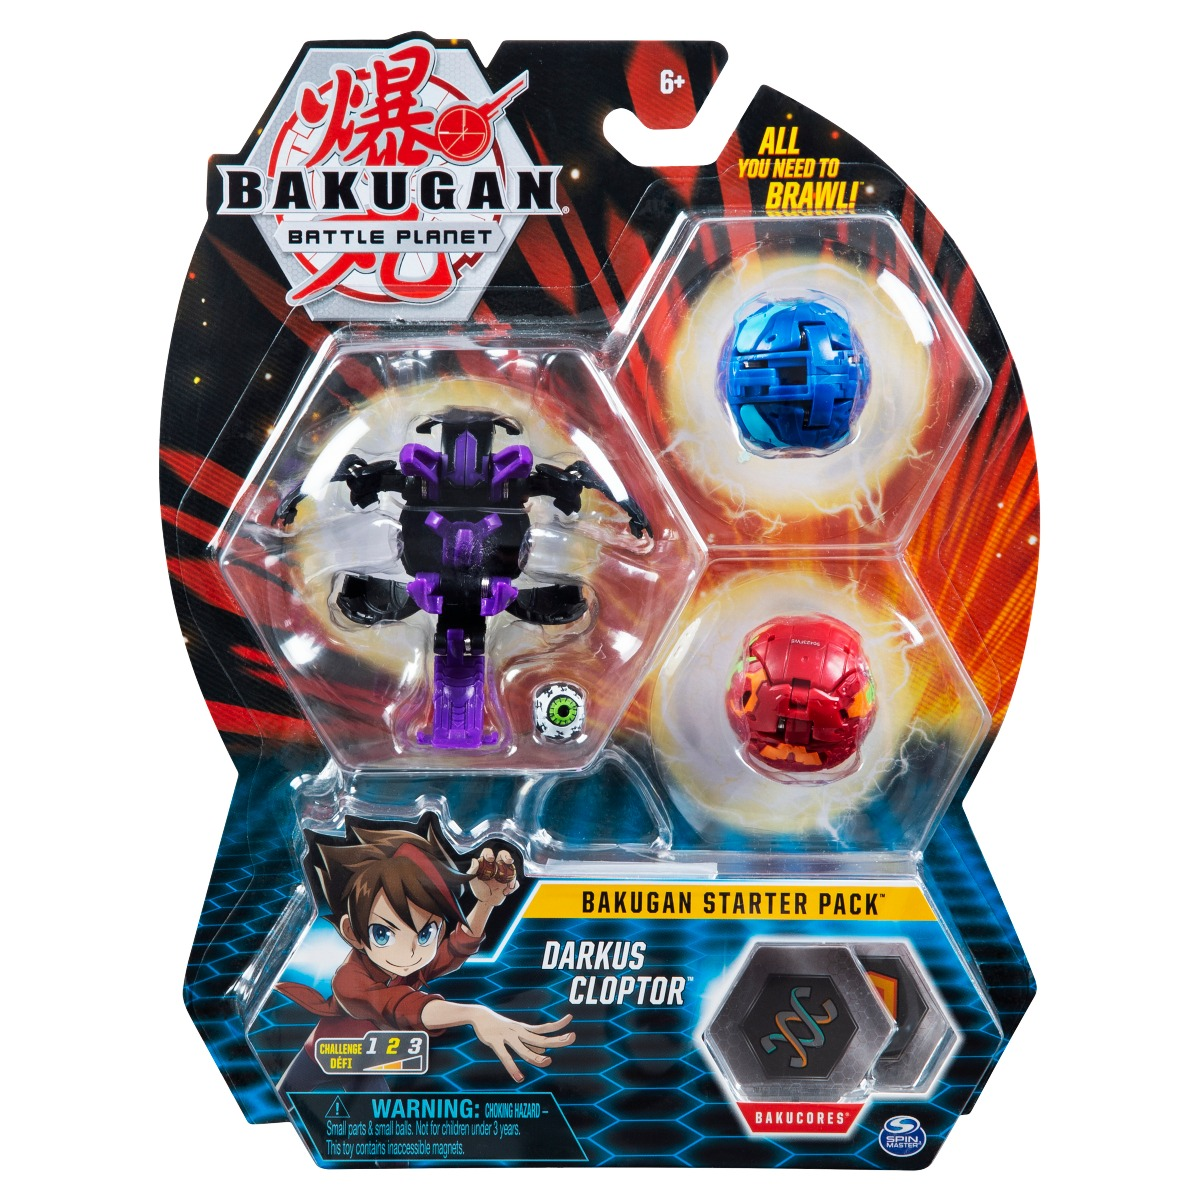 Set Bakugan Battle Planet Starter Pack, Darkus Cloptor, 20119855